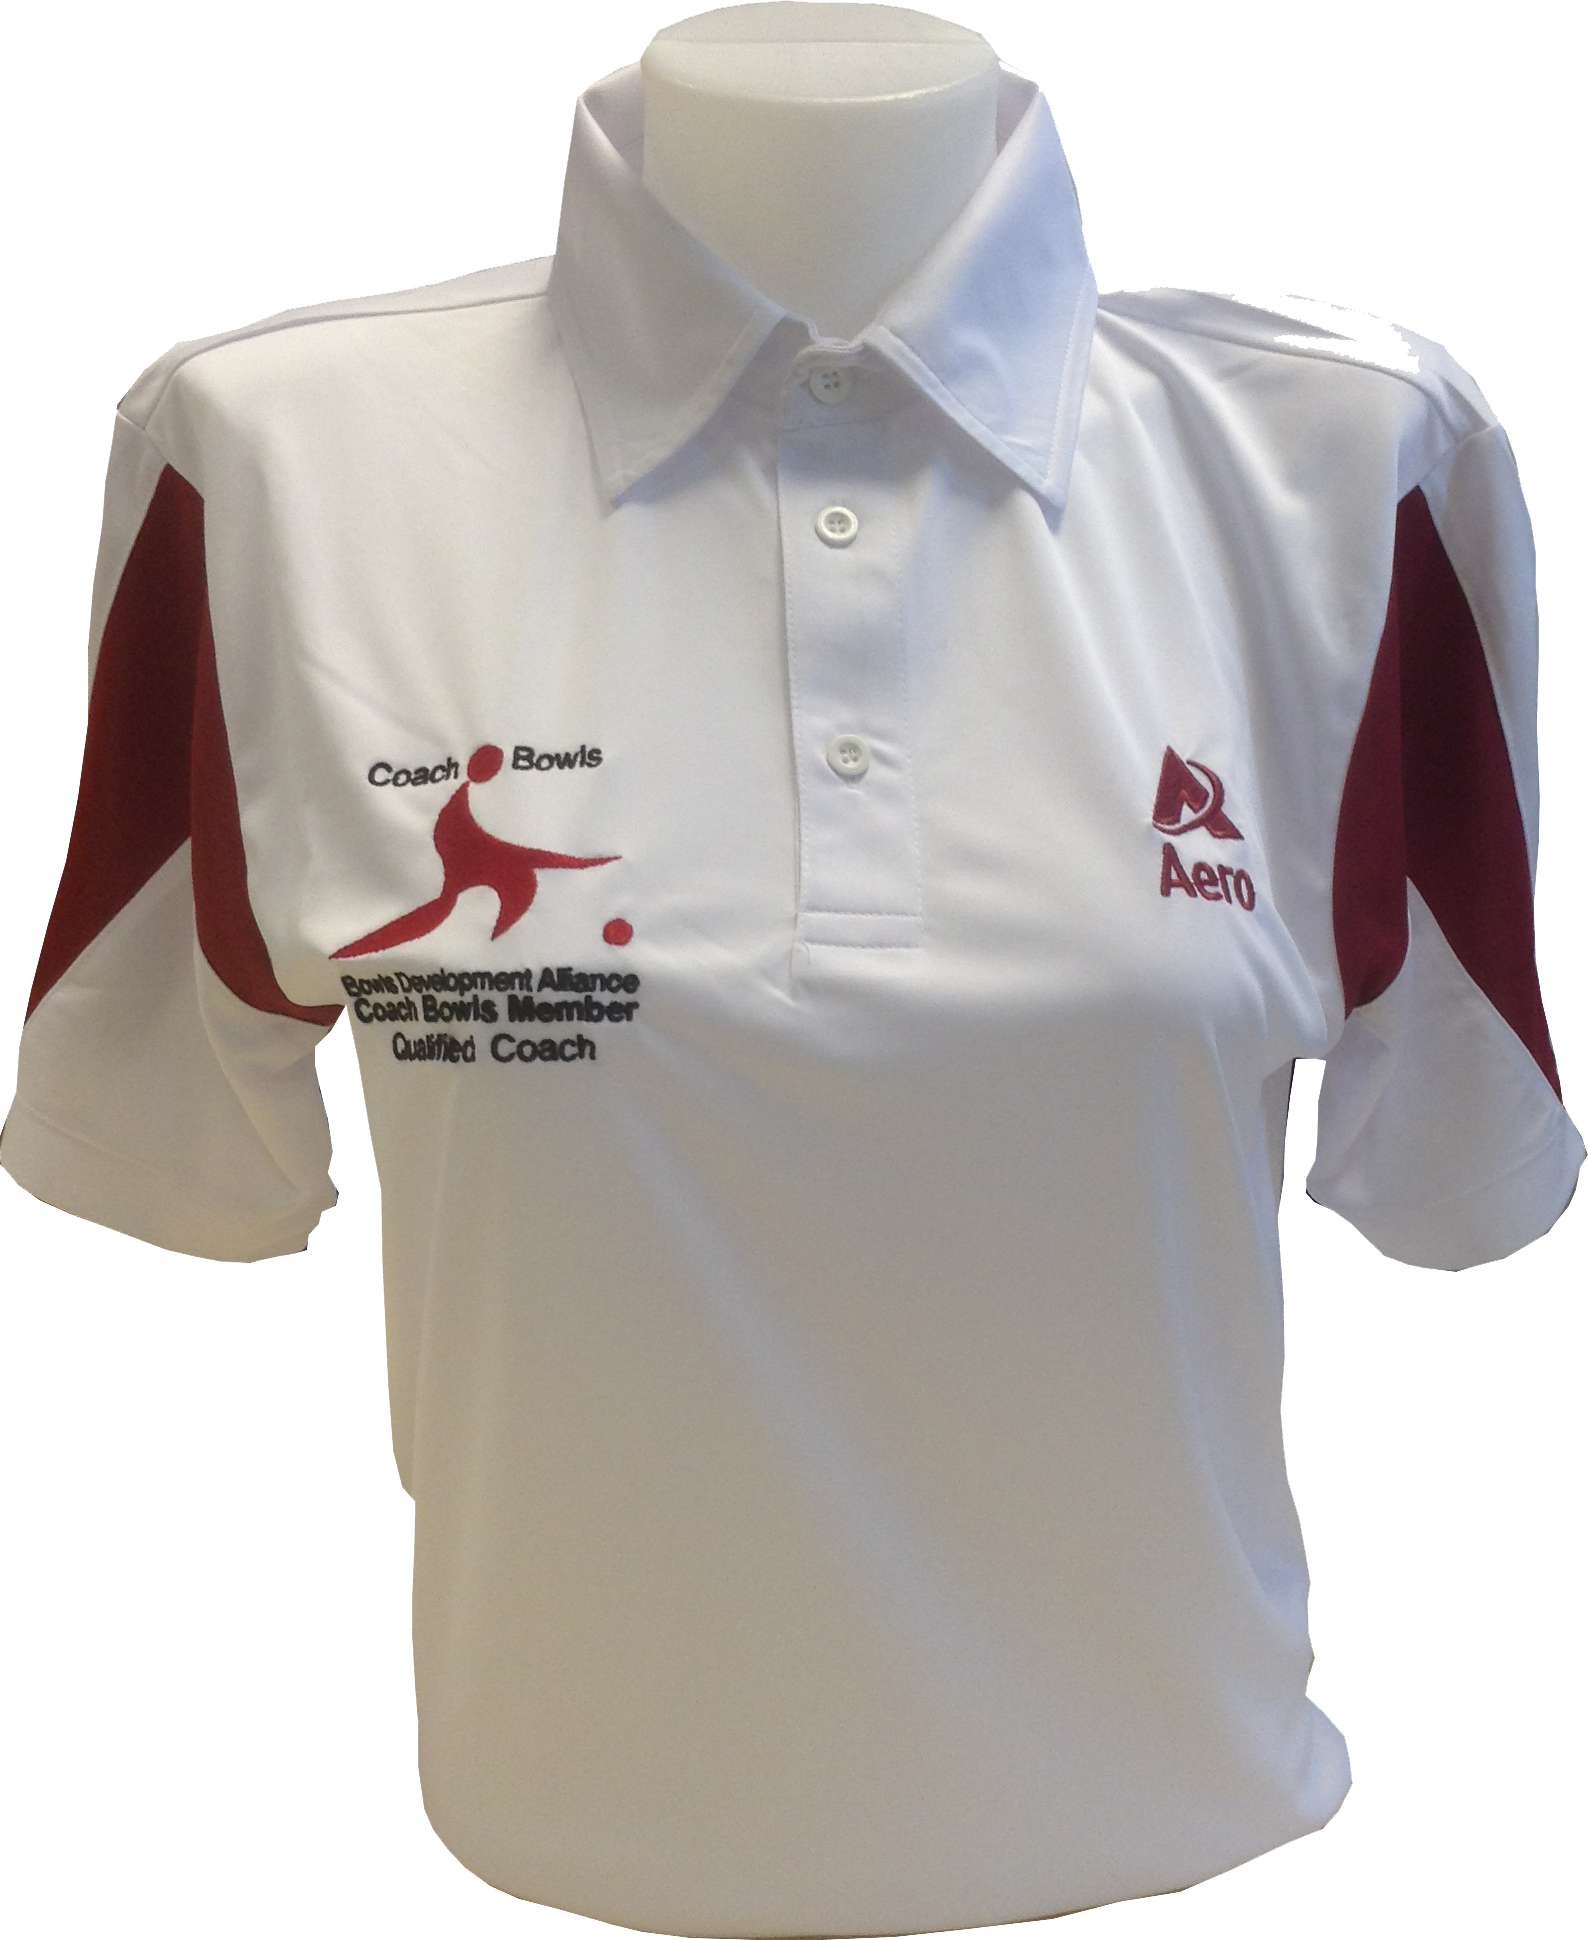 Qualified Coach Shirt